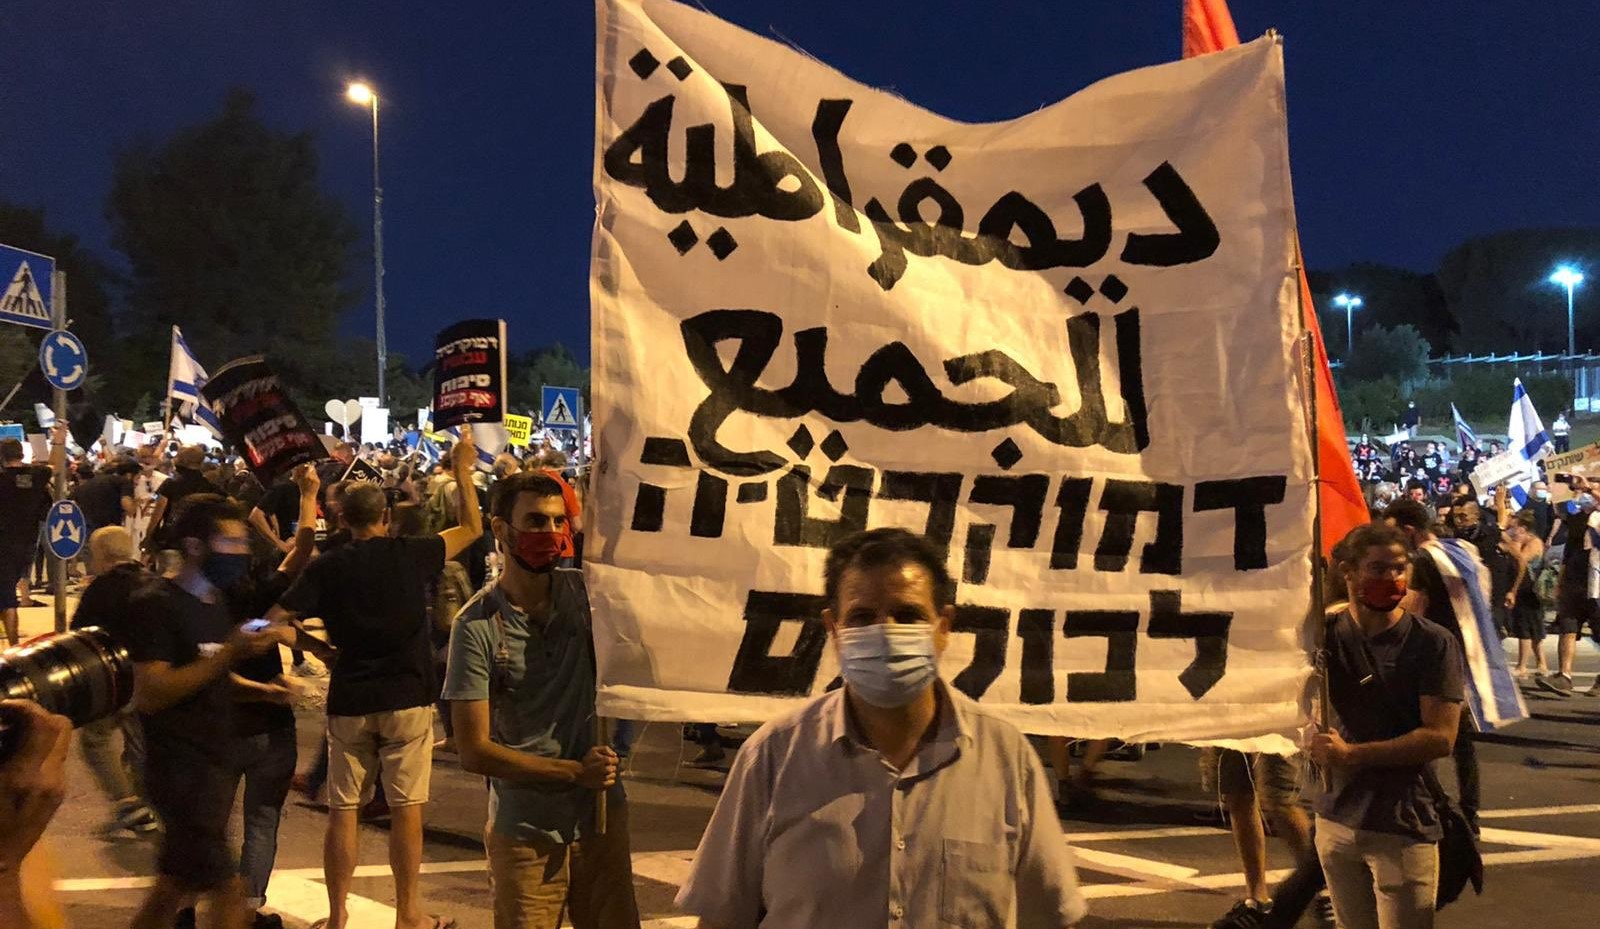 """Joint List leader, MK Ayman Odeh, during the Jerusalem demonstration against Prime Minister Netanyahu on Tuesday, July 21, 2020. The banner in Arabic and Hebrew reads """"Democracy for all."""""""